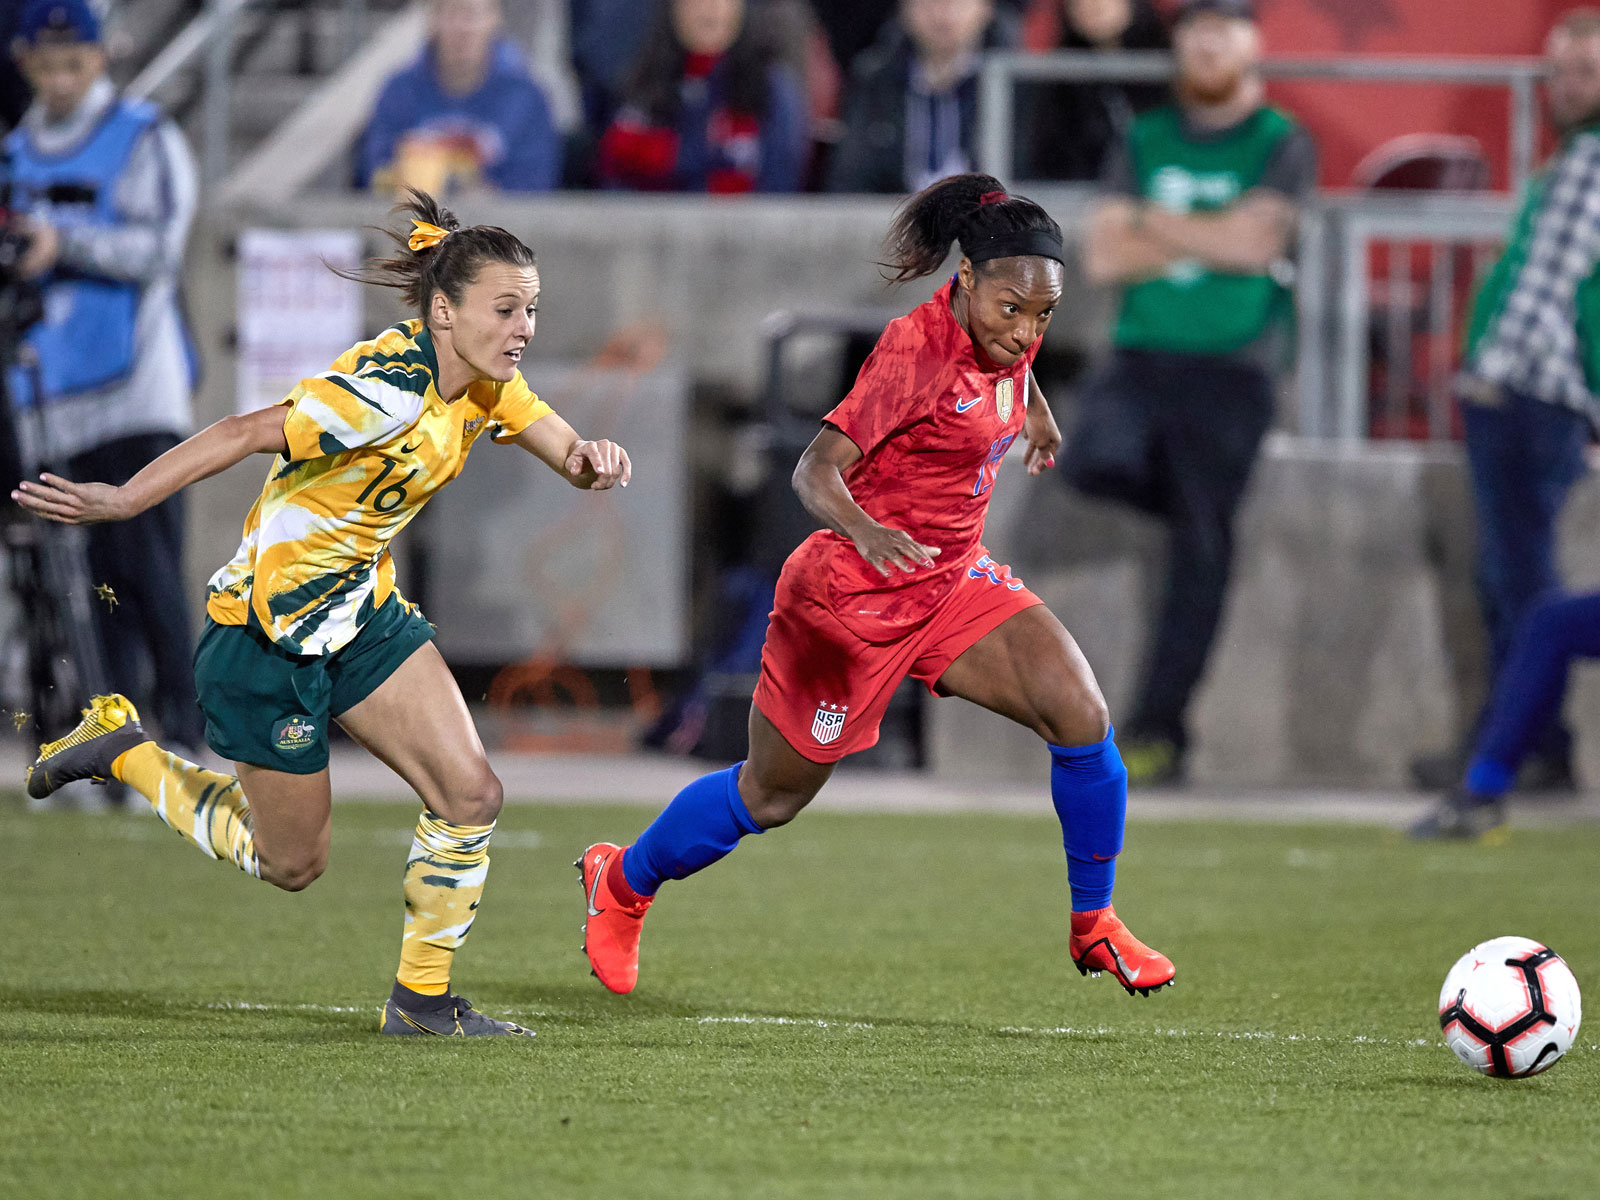 USWNT's Crystal Dunn is expected to start at left back at the Women's World Cup